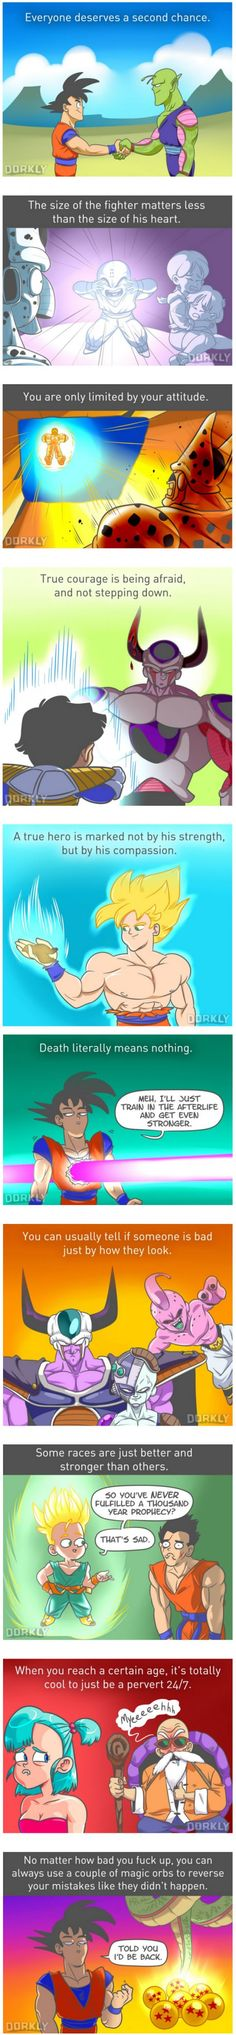 10 Things I Learned from Dragon Ball Z